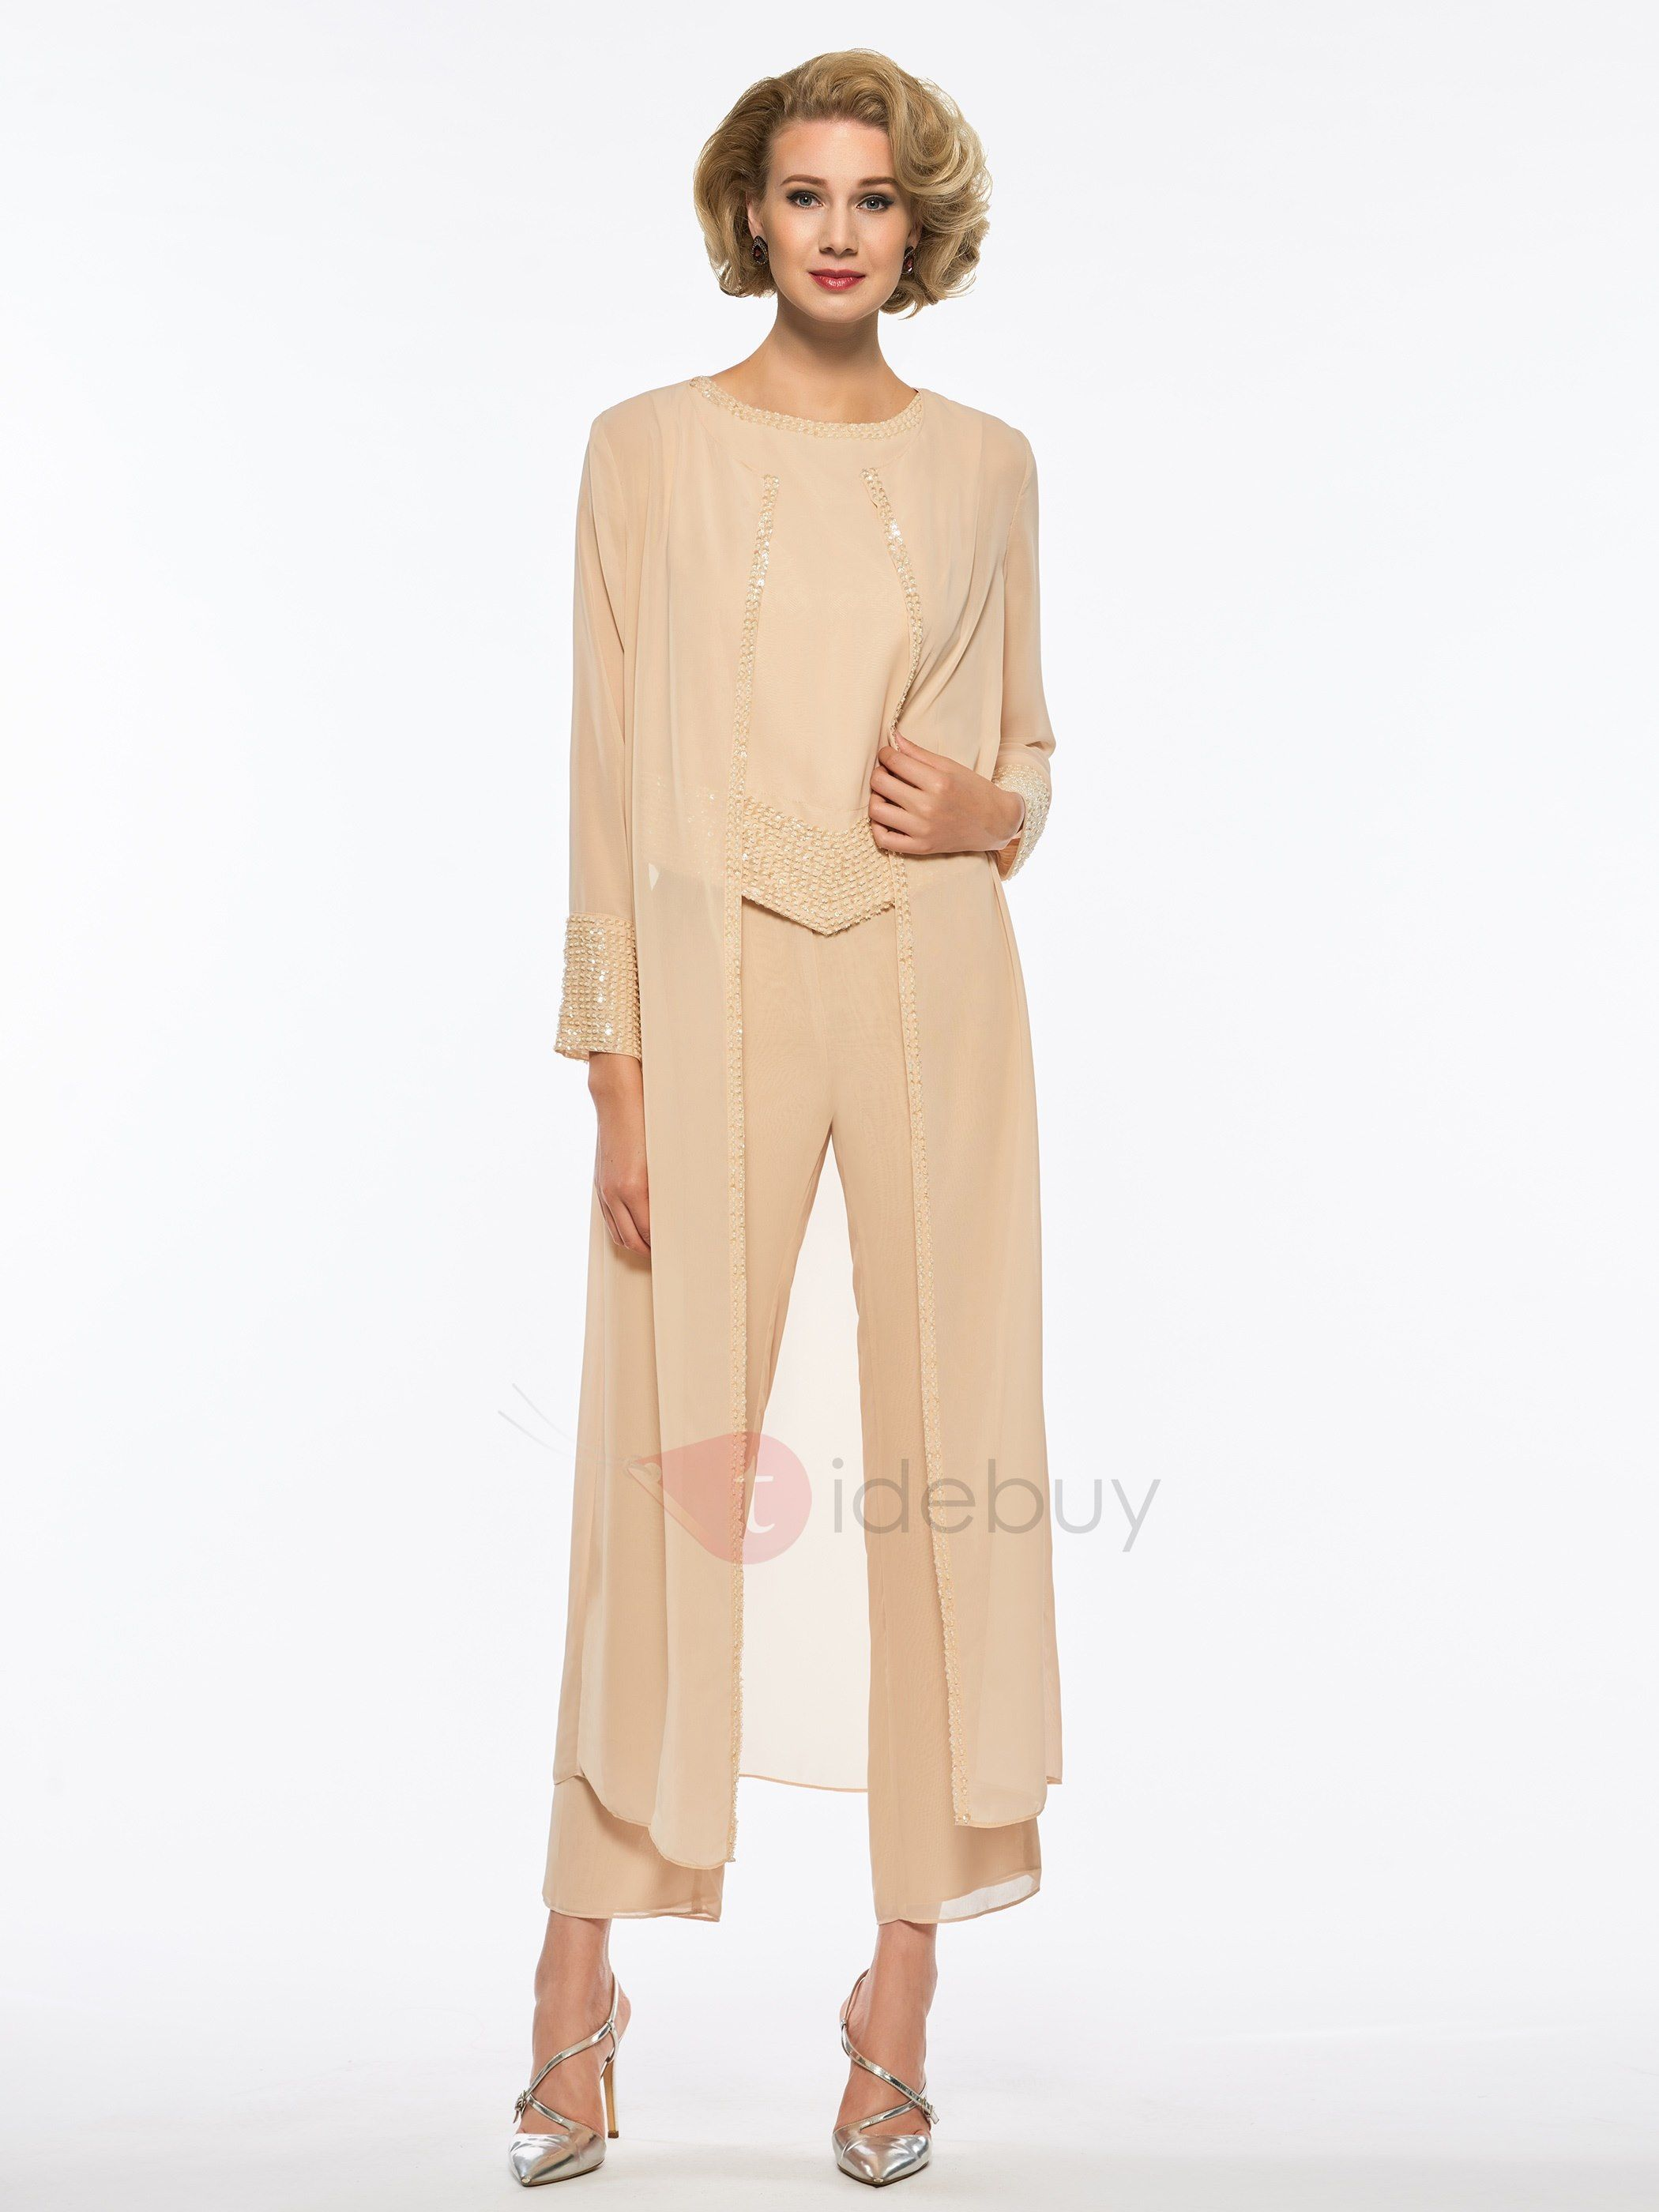 56a01f9395d1 Tidebuy.com Offers High Quality Superior Beaded Scoop Neck Mother of the  Bride Jumpsuit with Jacket